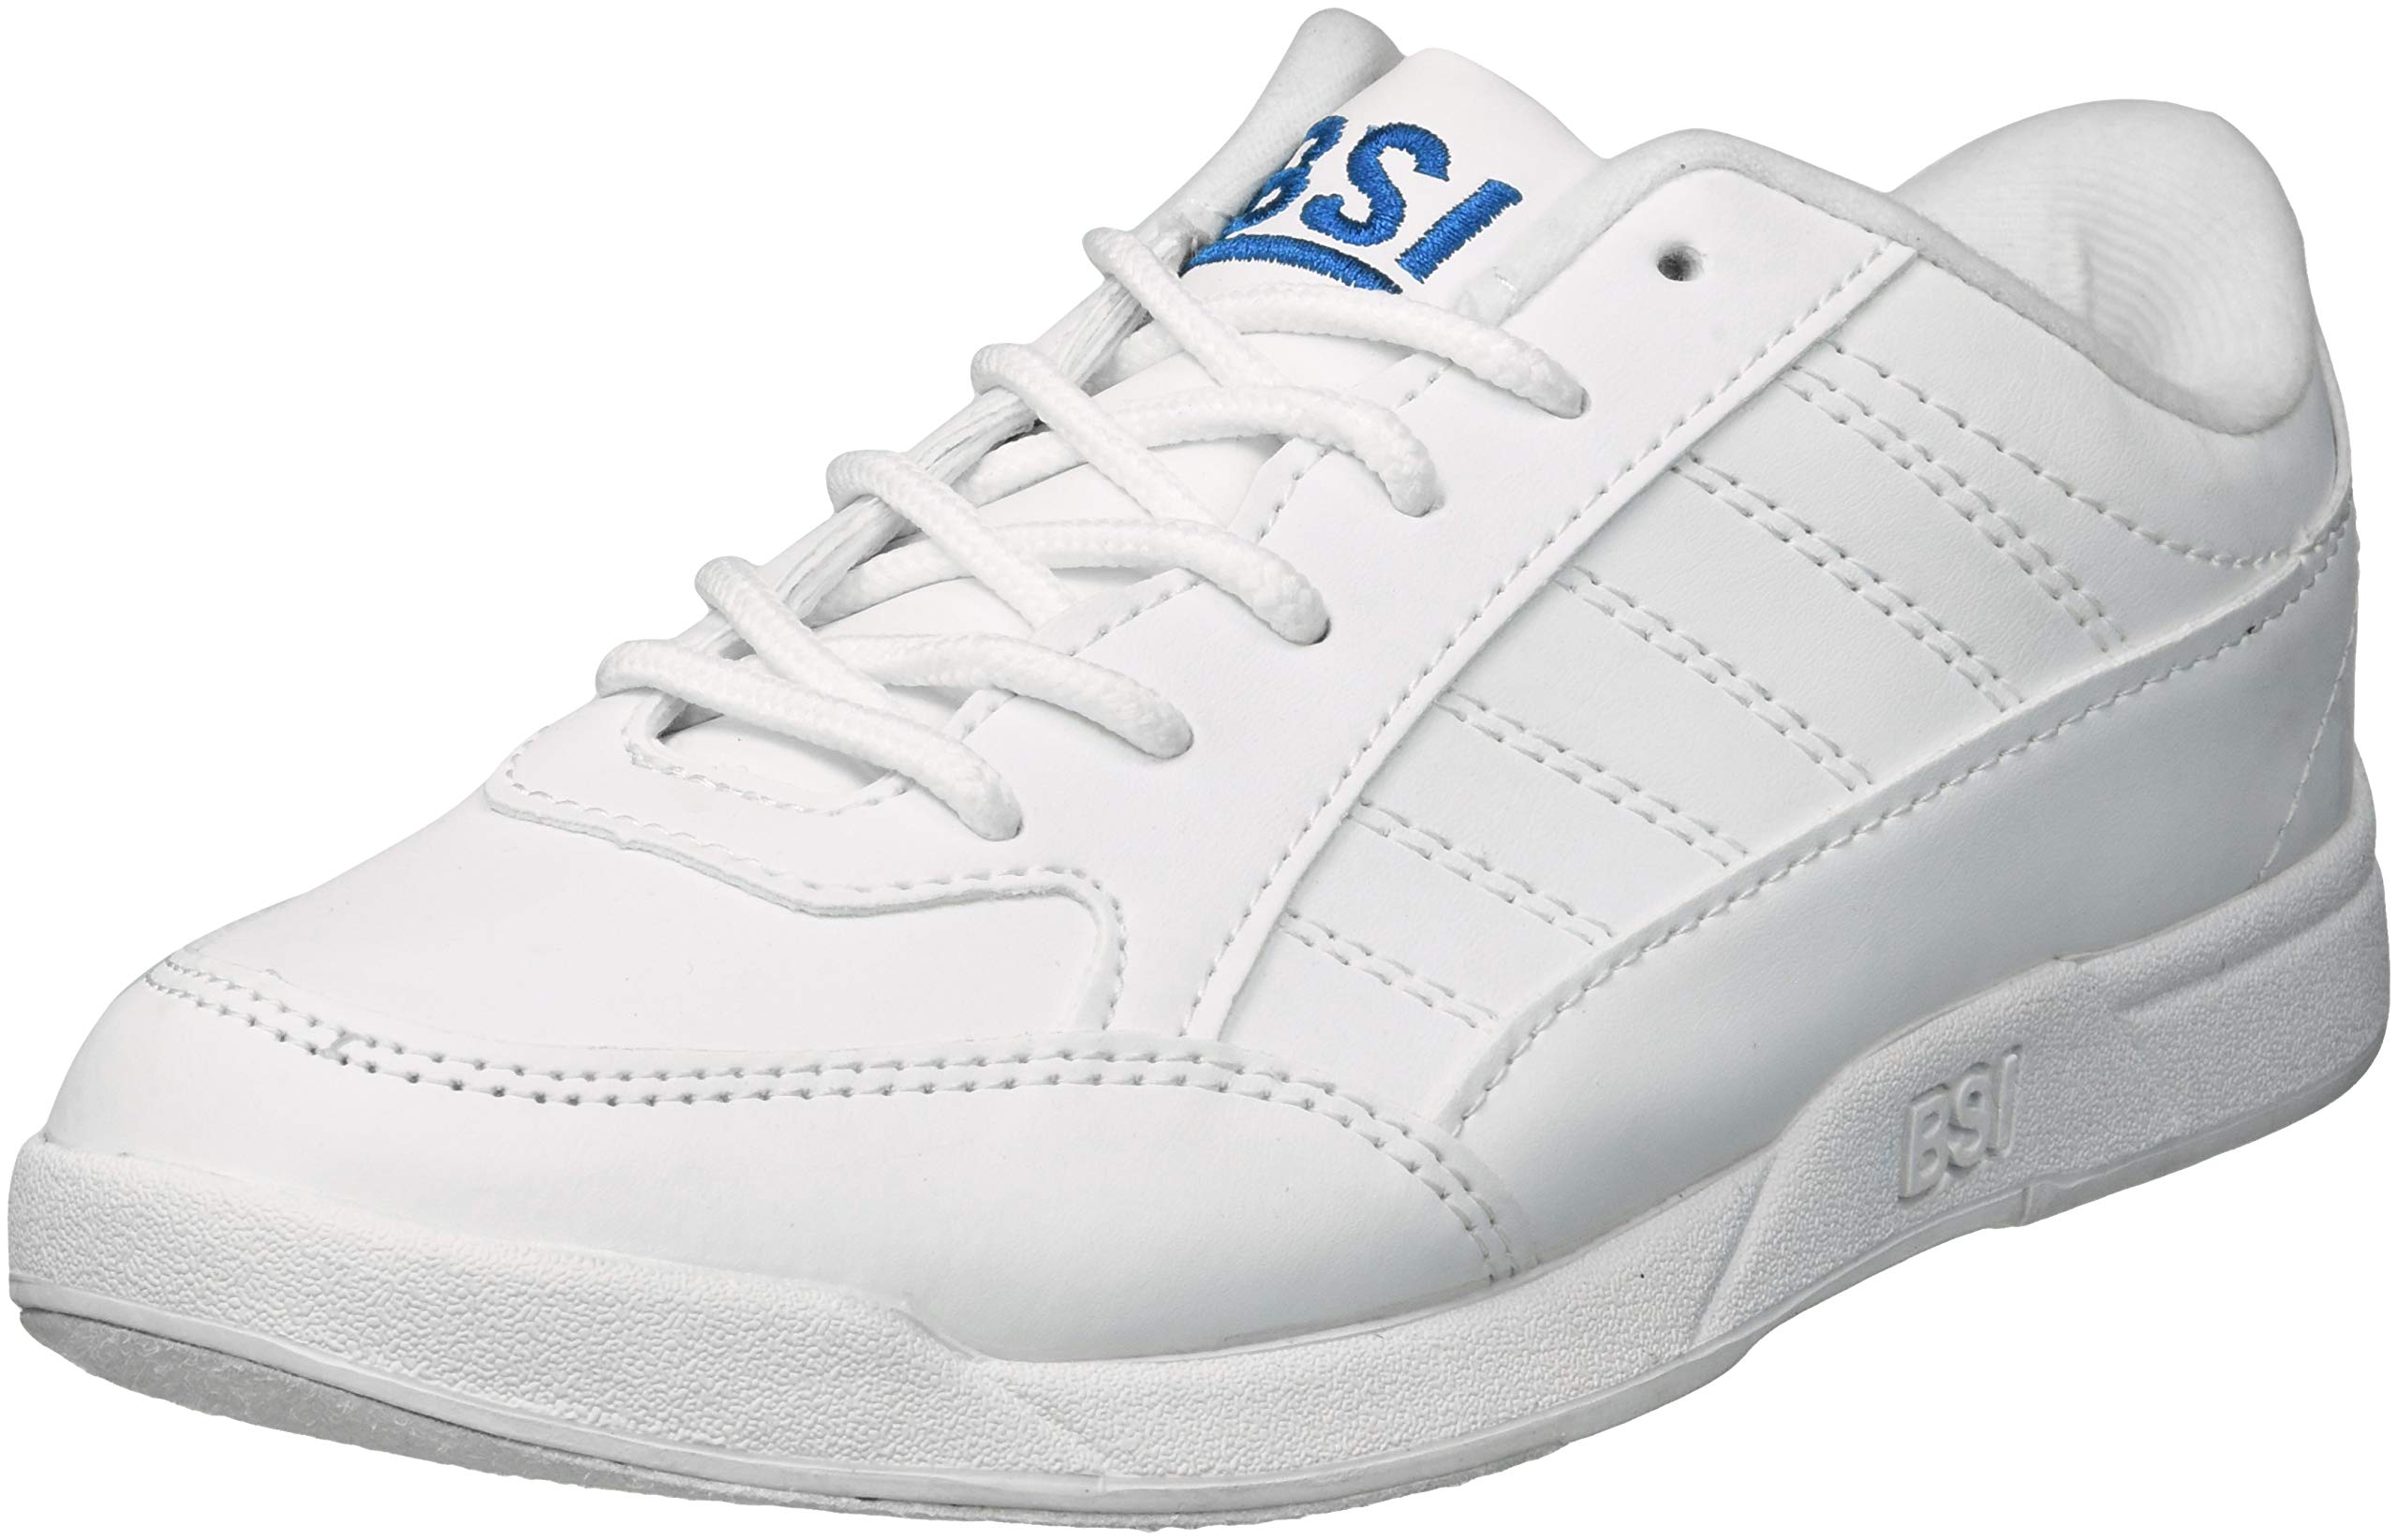 BSI Boy's Basic #532 Bowling Shoes, White, Size 1.0